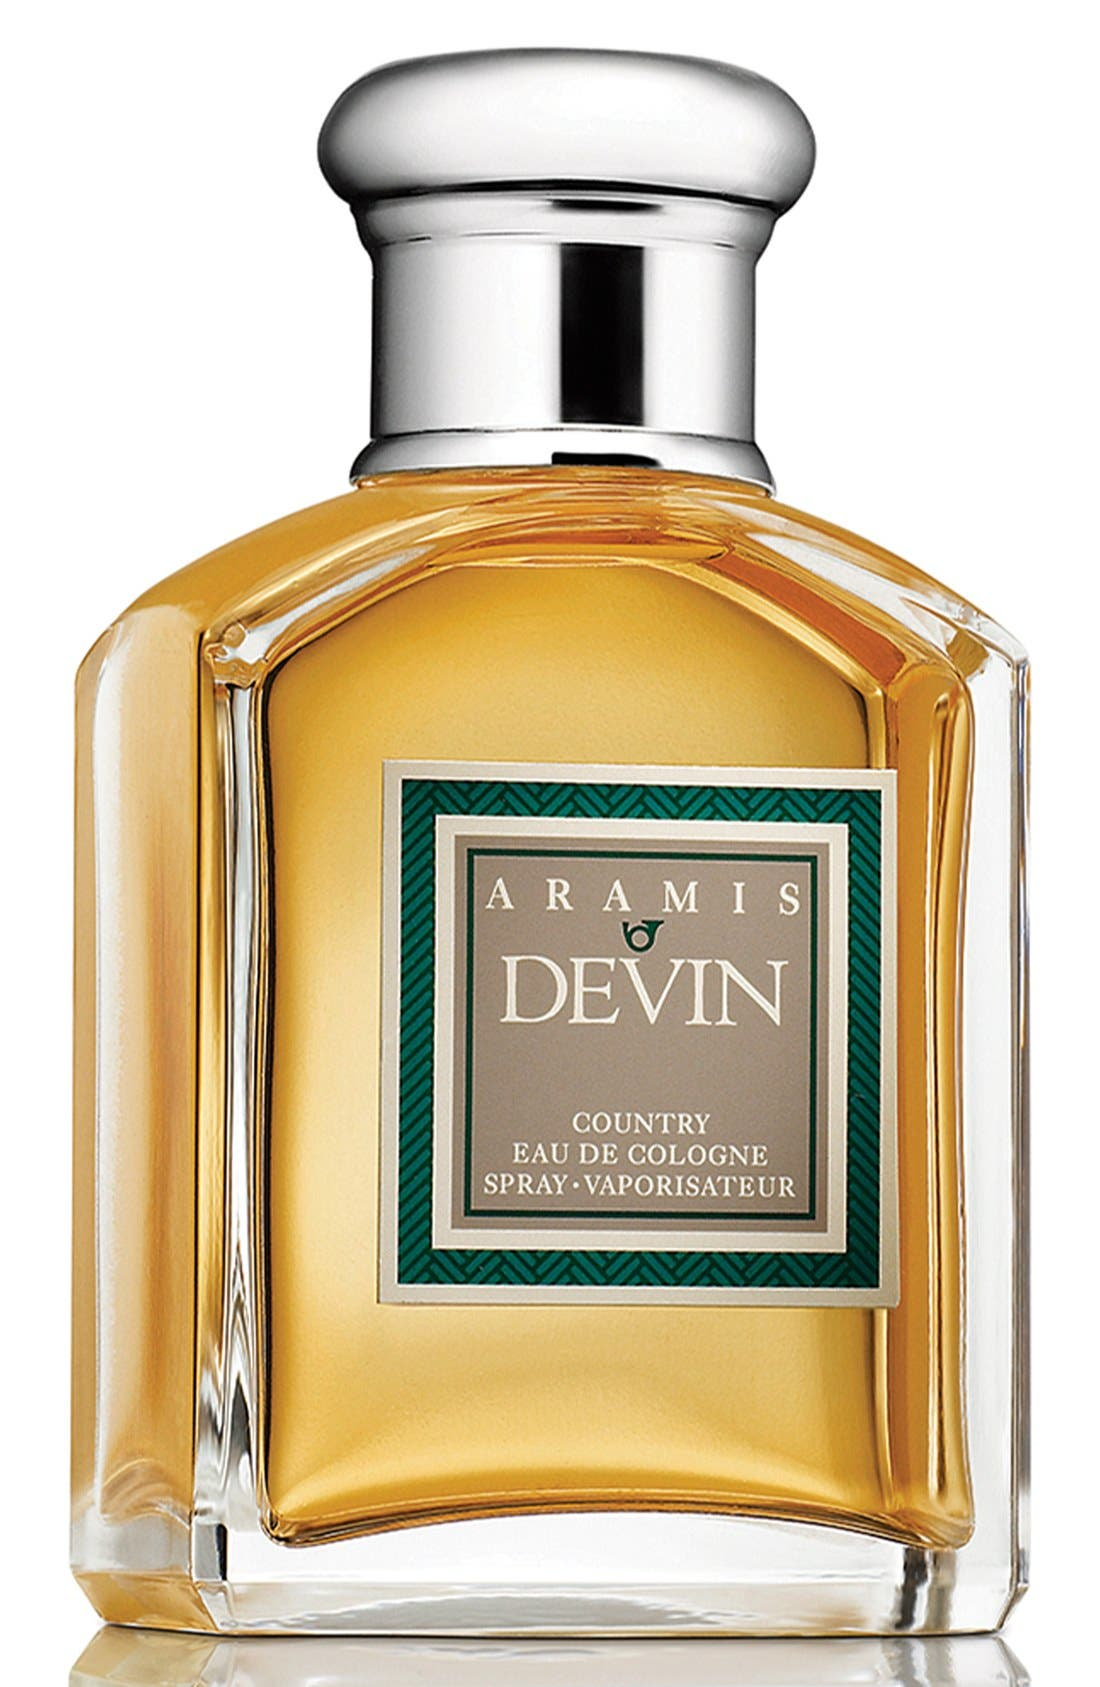 Aramis 'Devin' Country Eau de Cologne